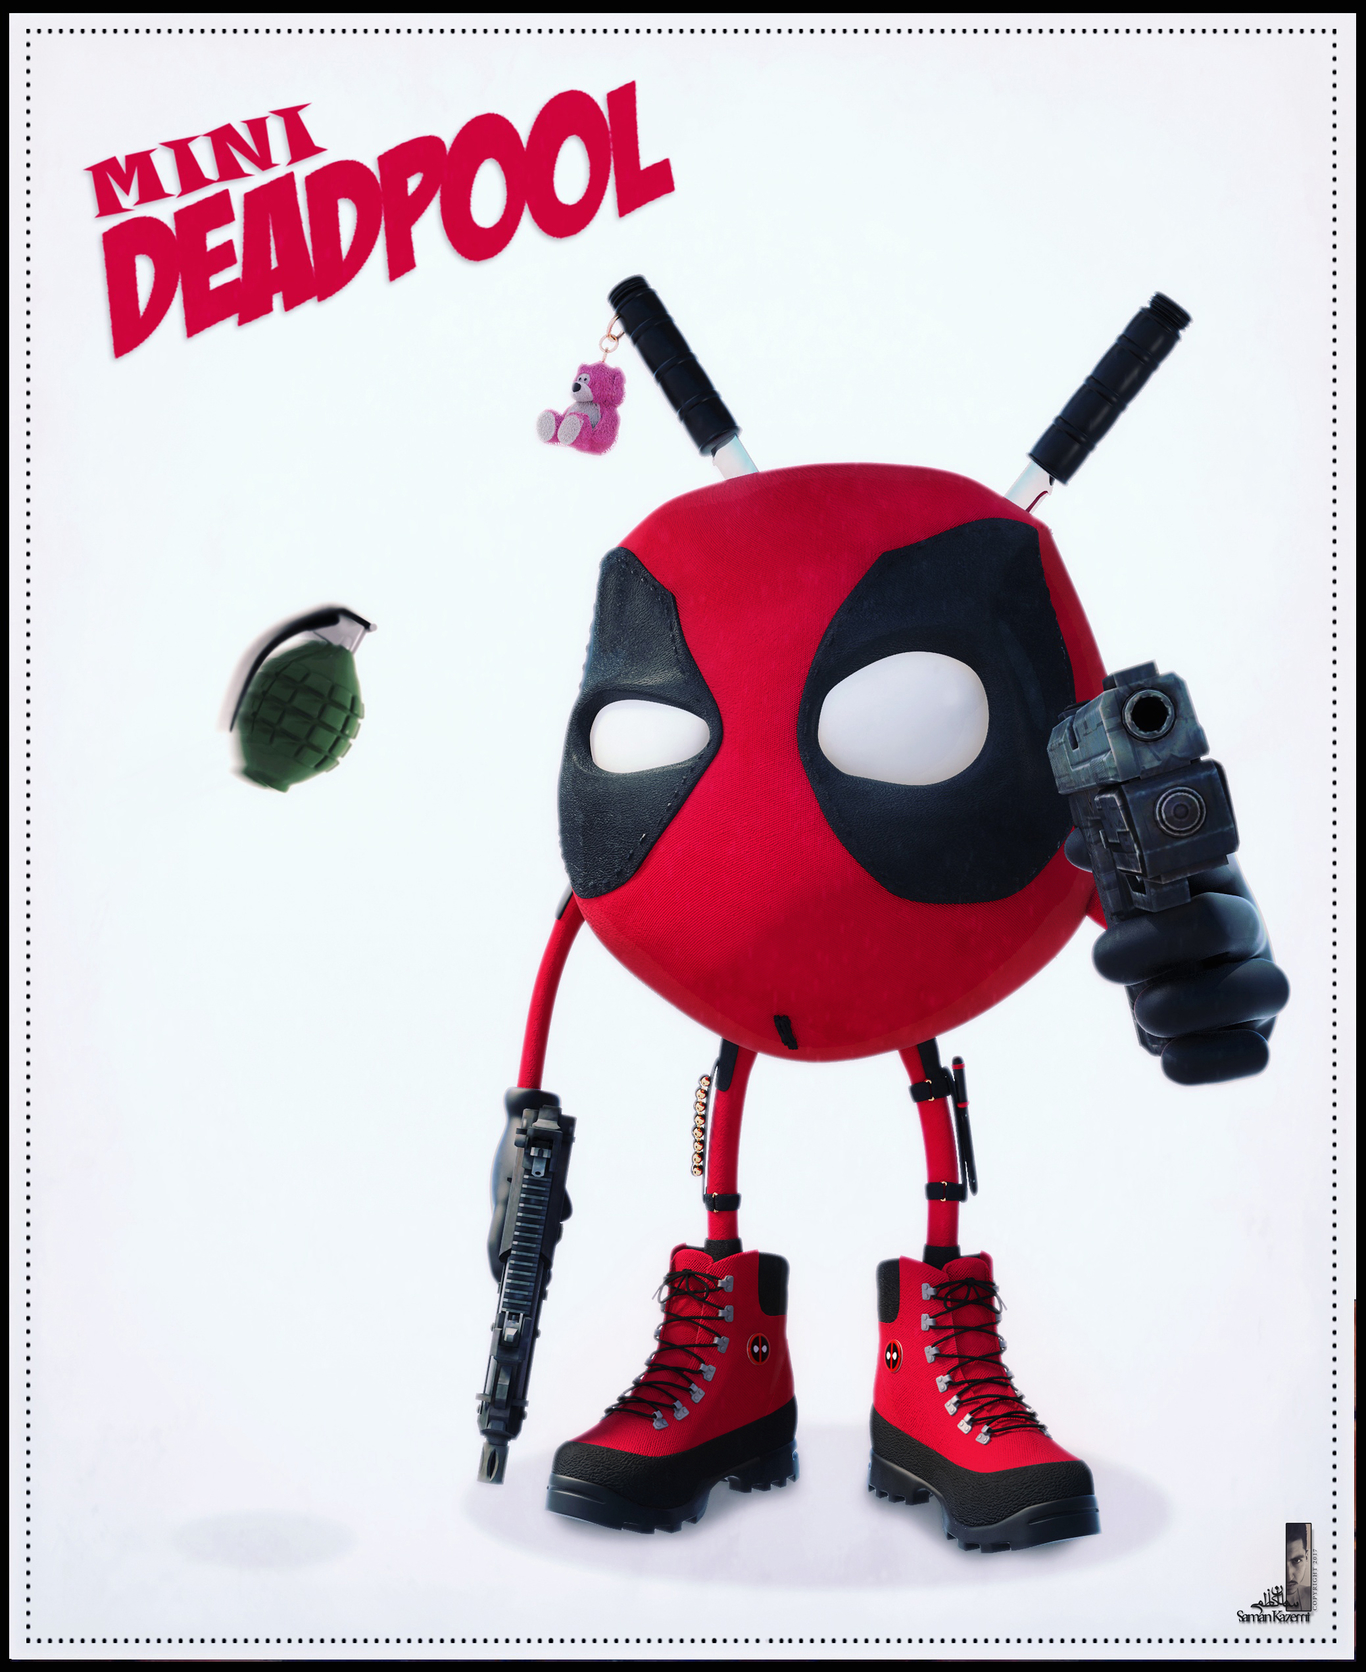 Samankazemi mini deadpool 1 fe7bcc50 d925